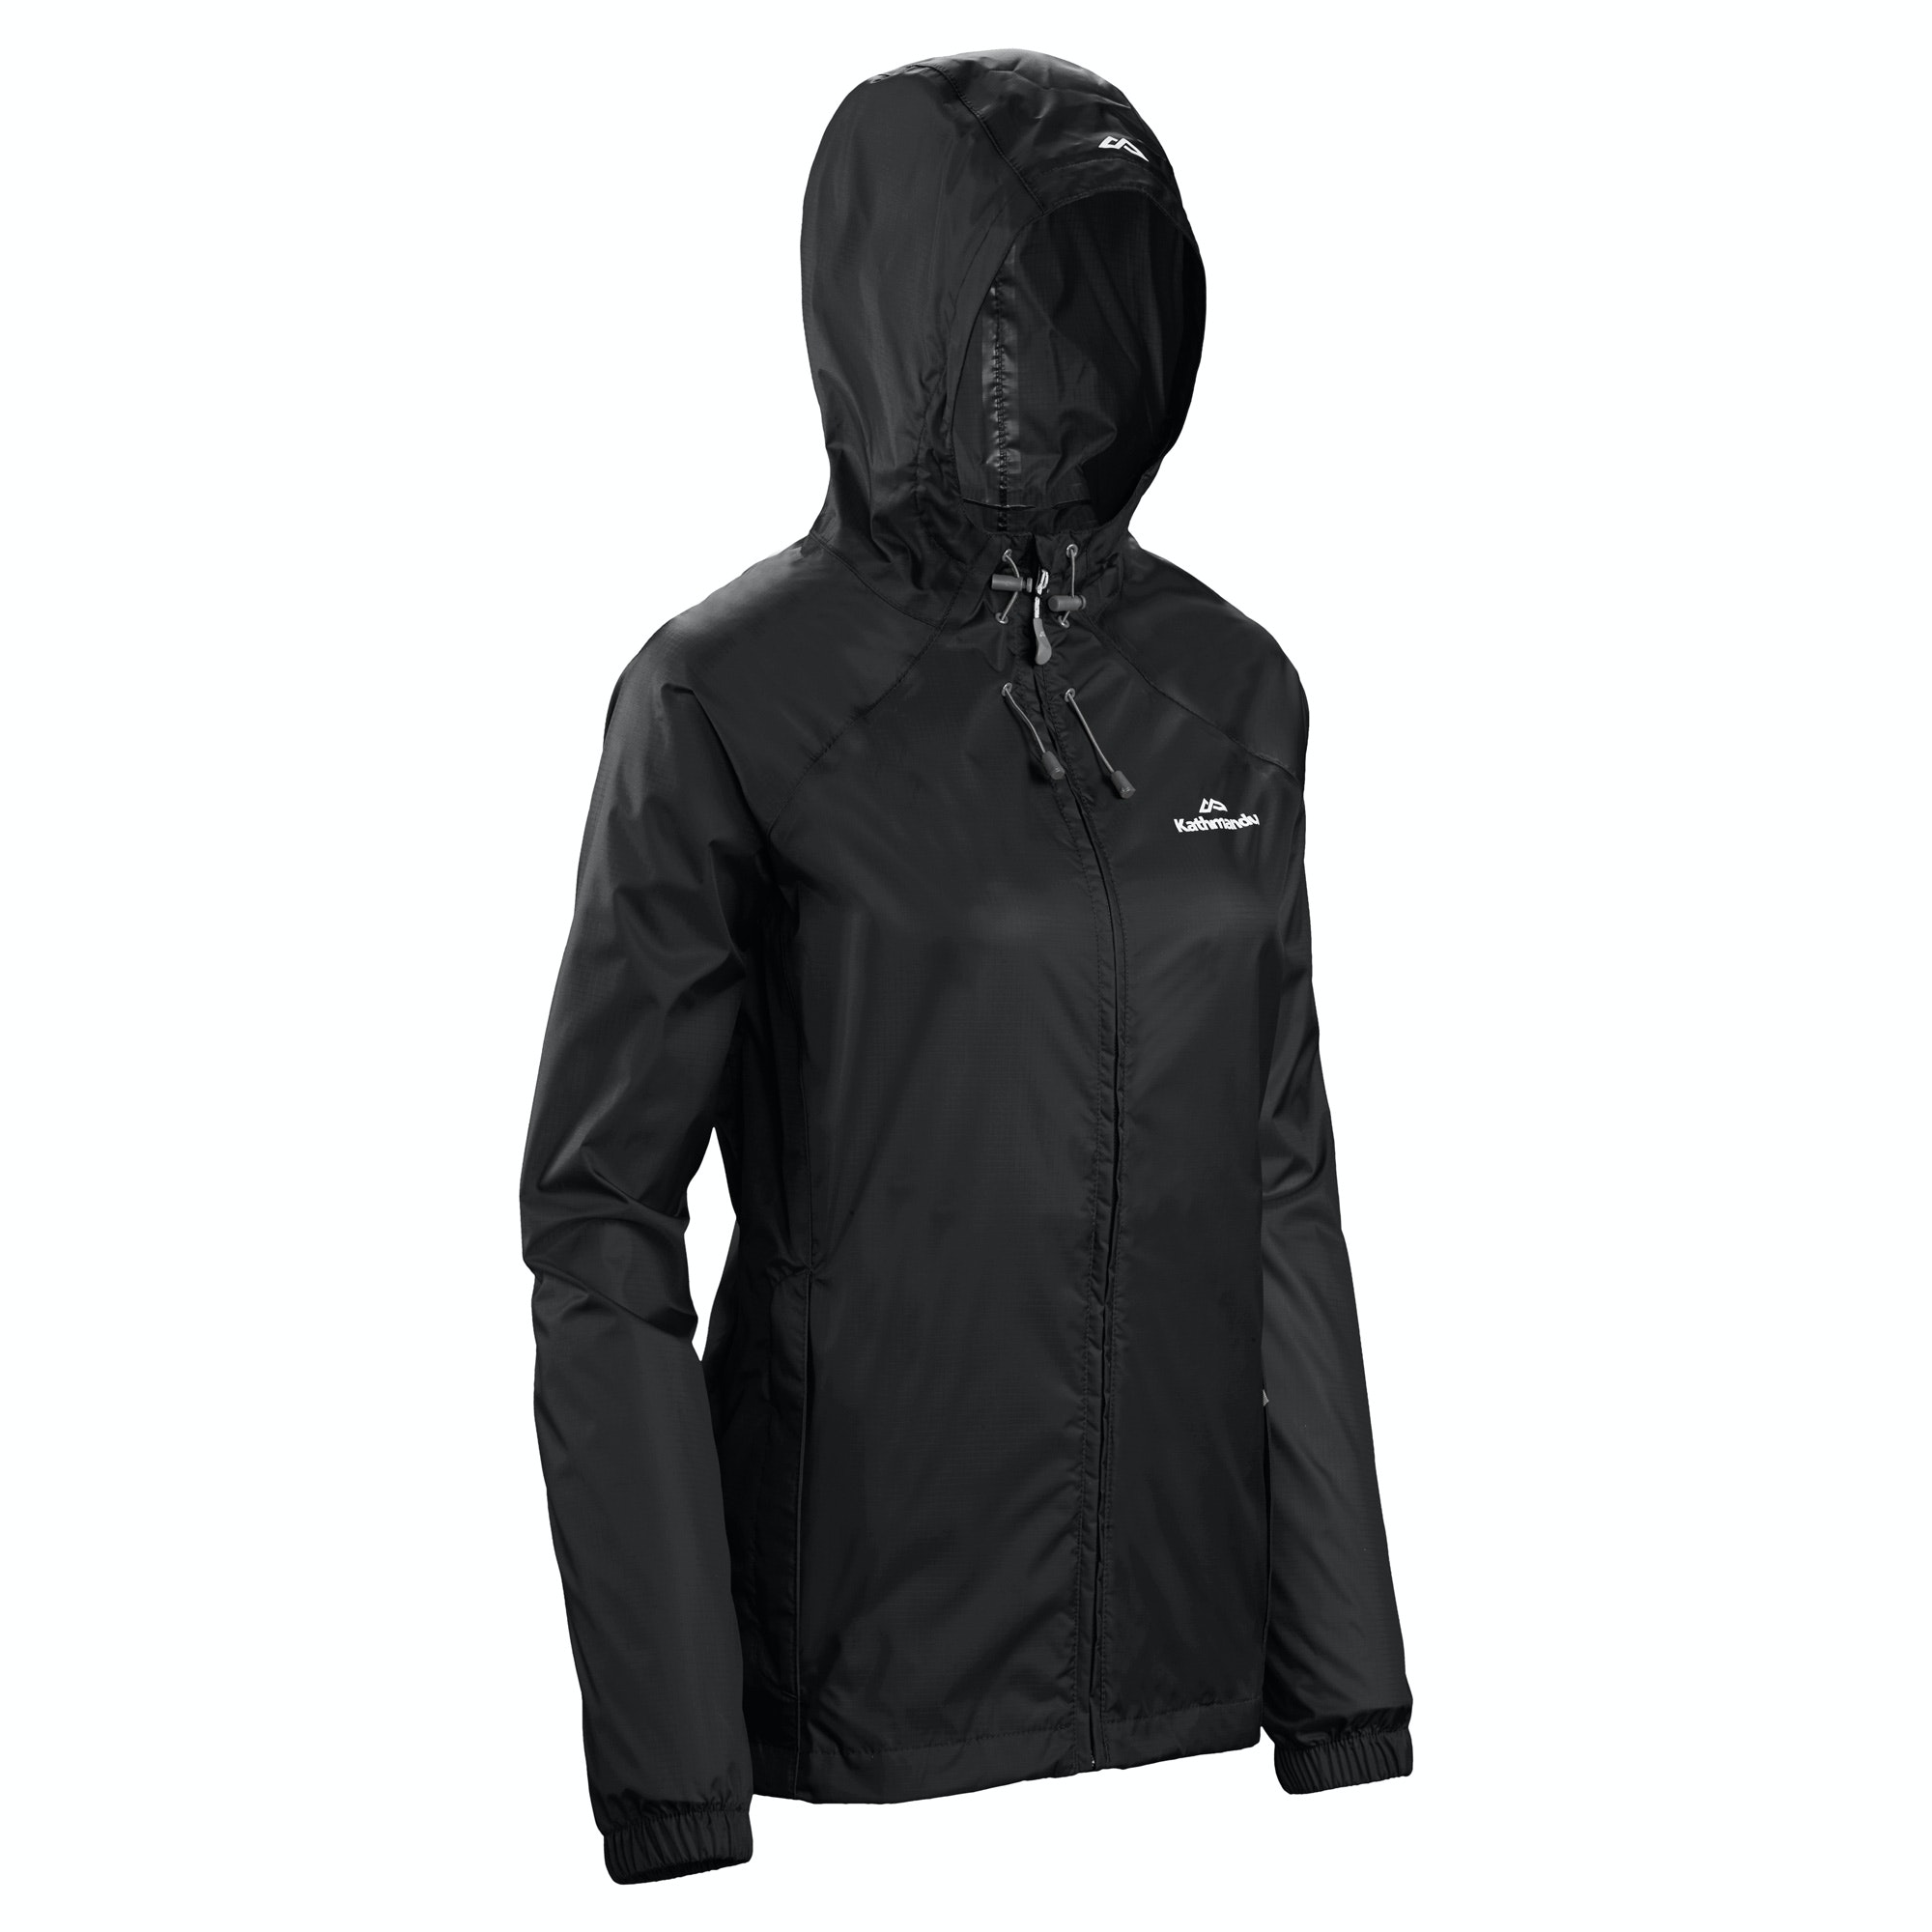 NEW-Kathmandu-Pocket-it-Women-039-s-Hooded-Water-Resistant-Packaway-Light-Rain thumbnail 10